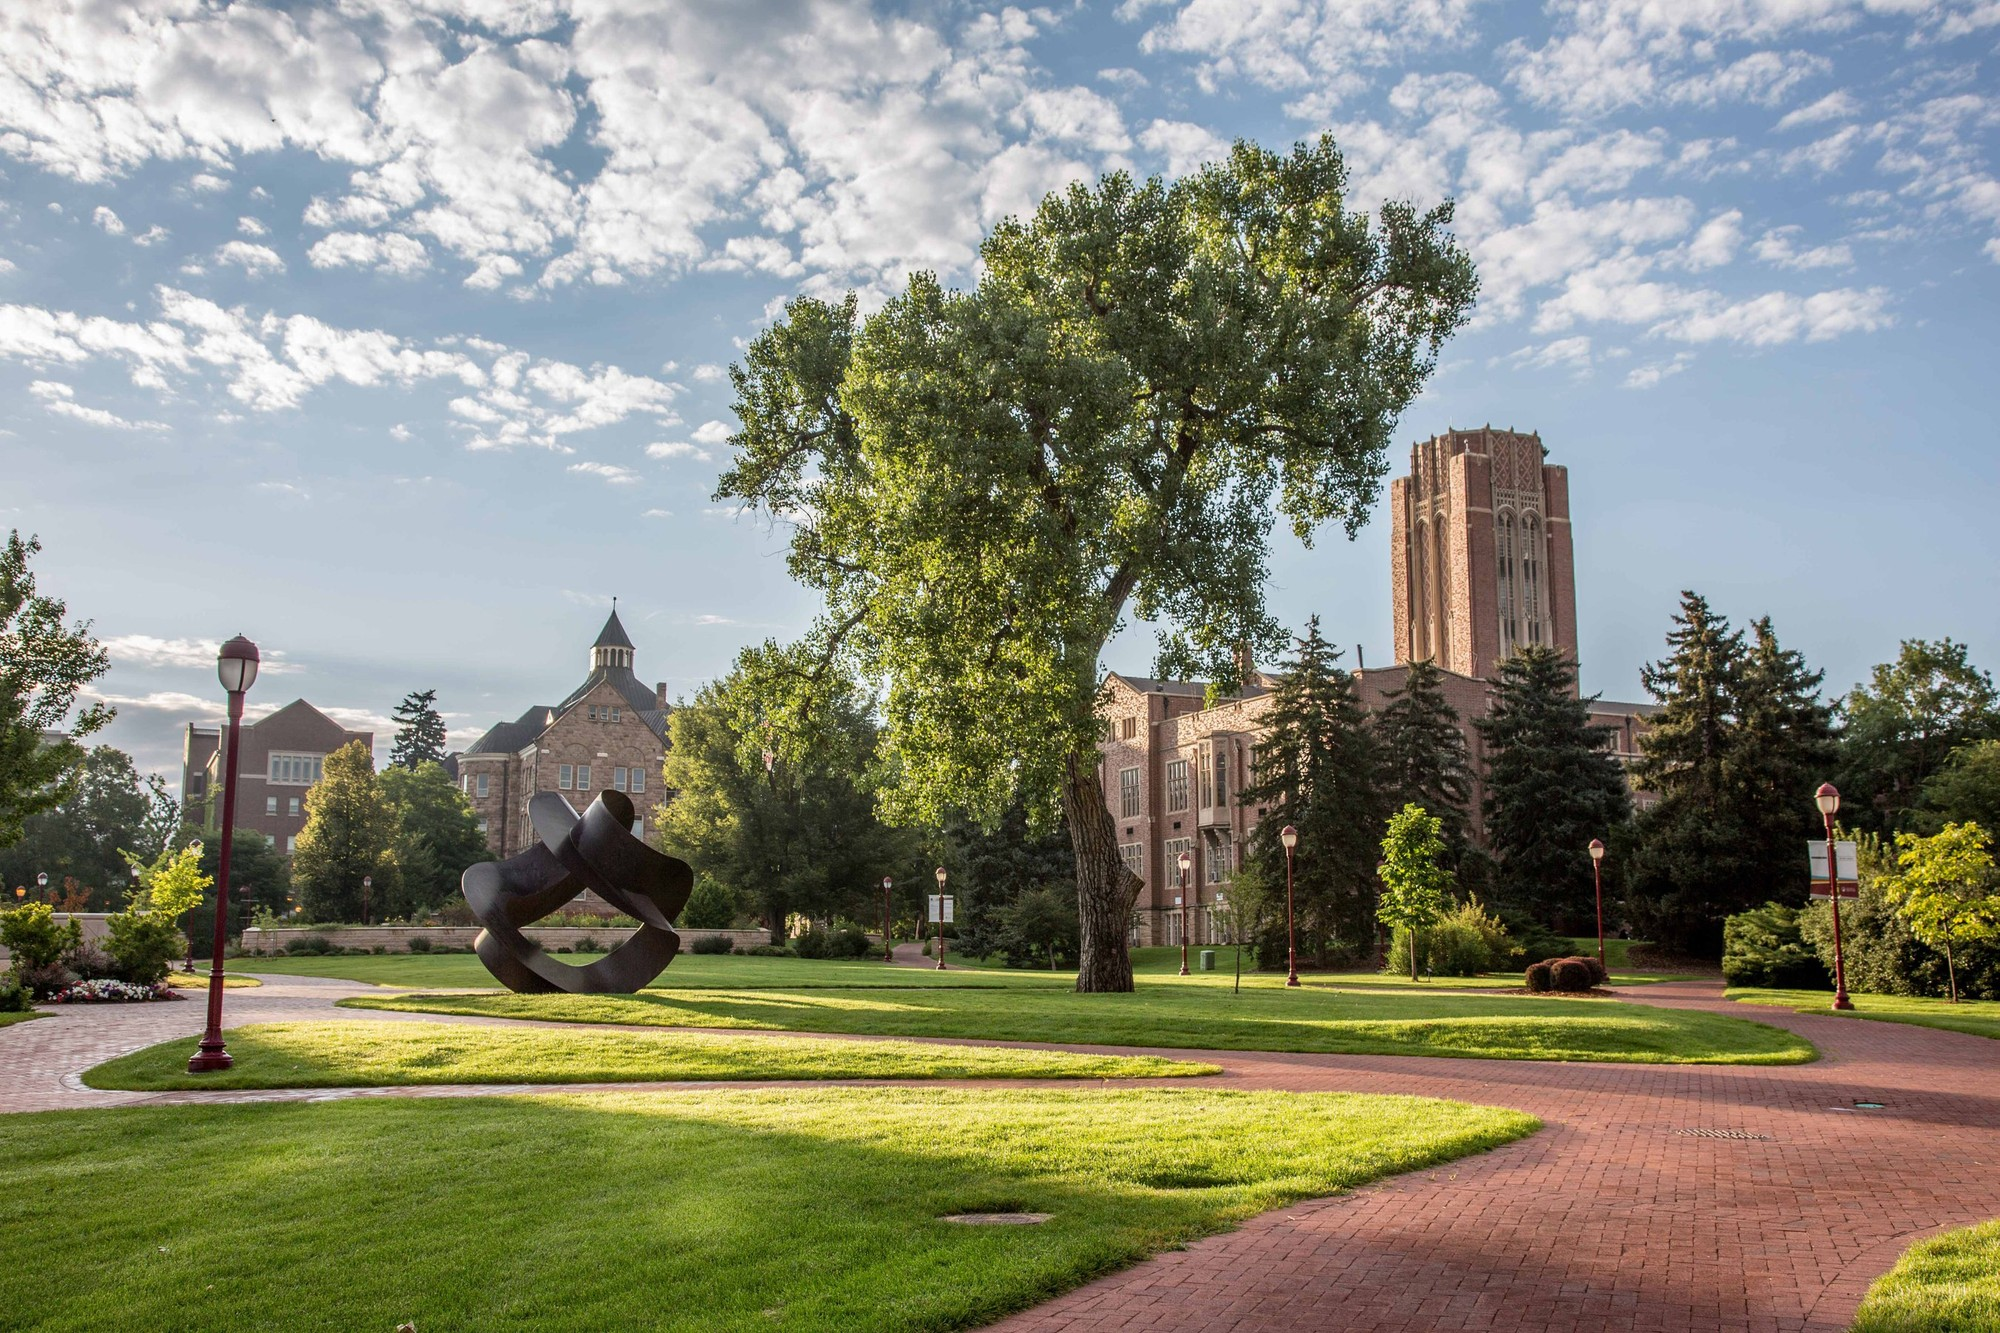 Red brick paths and grassy quads line the campus of University of Denver